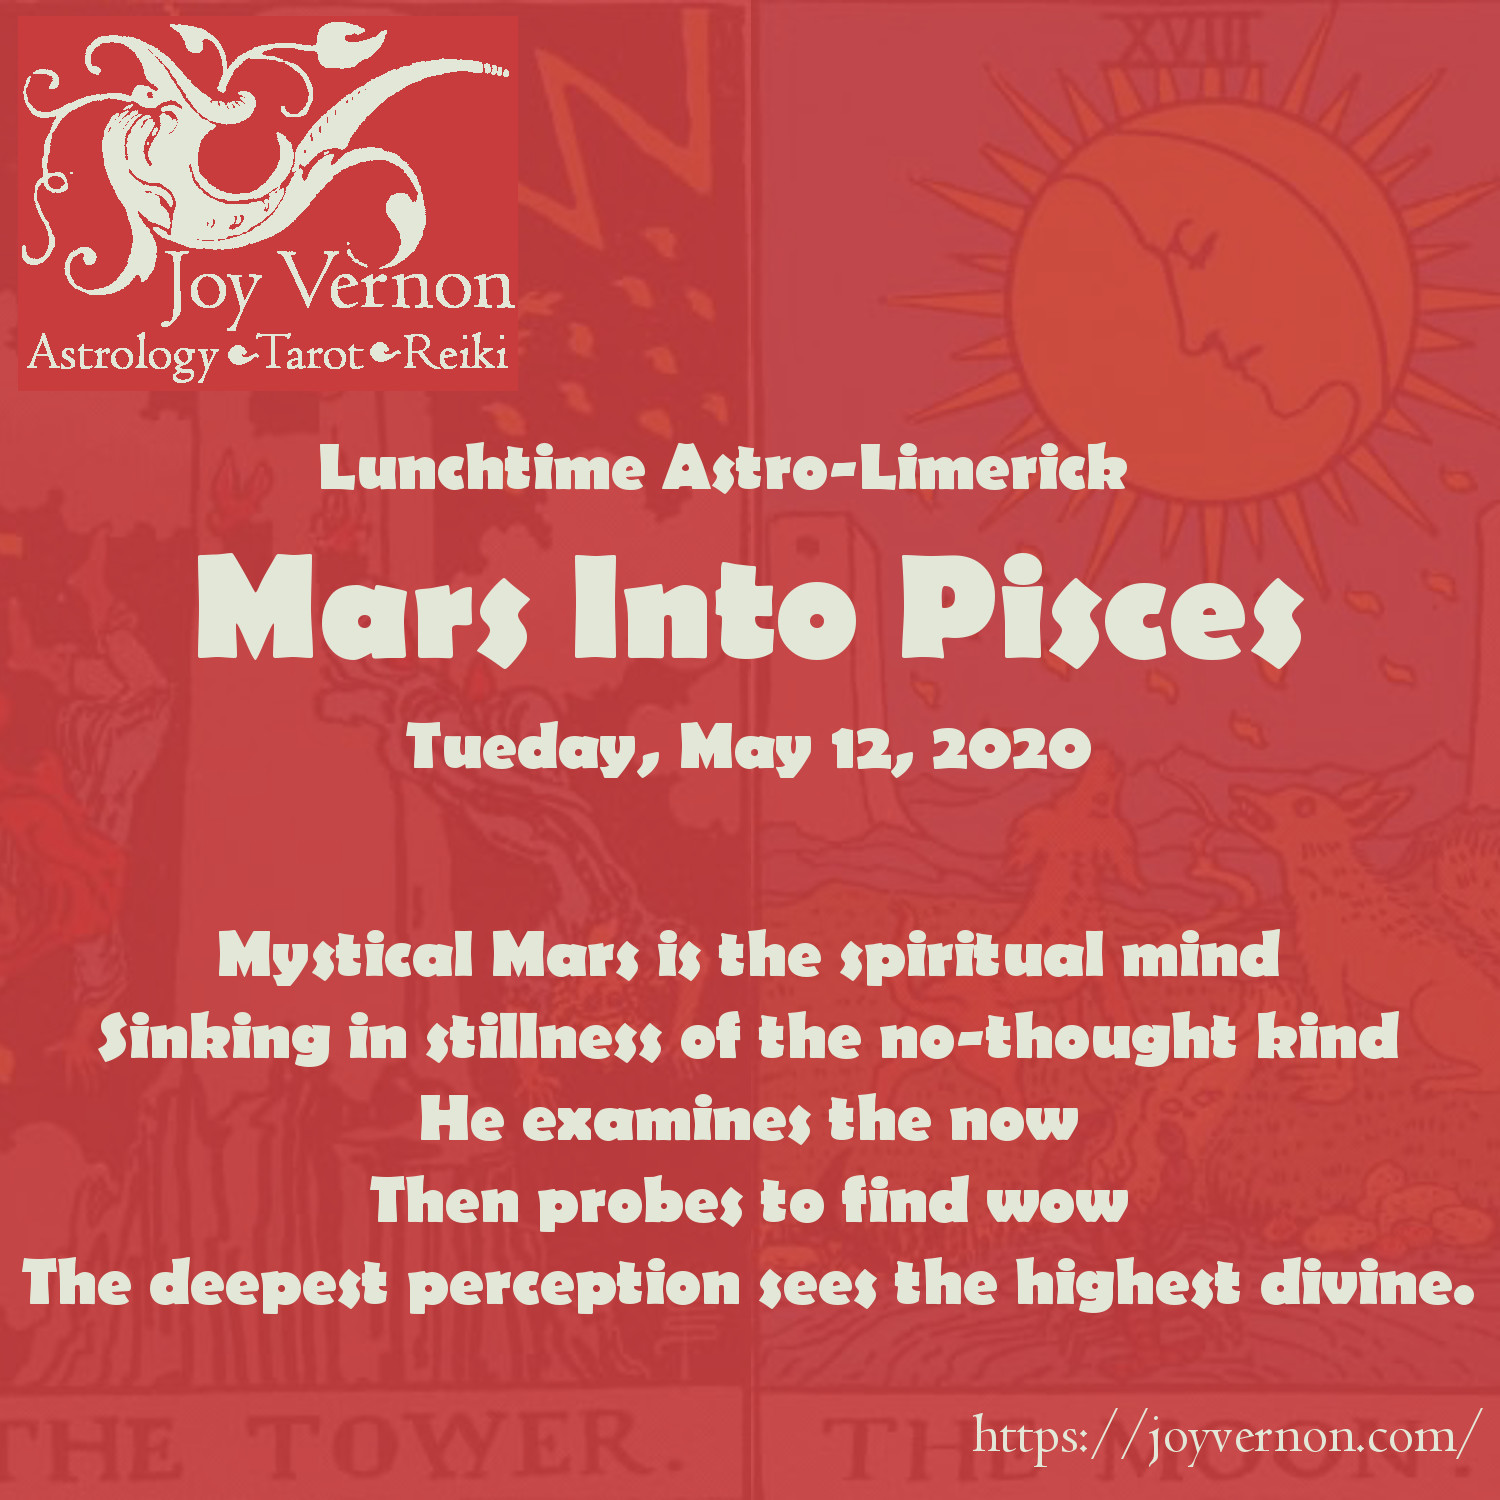 Mars gains a mystical mindset in Pisces, a desire for enlightenment. Today's #lunchtimeastrolimerick explores the spiritual essence of Mars in Pisces 2020.